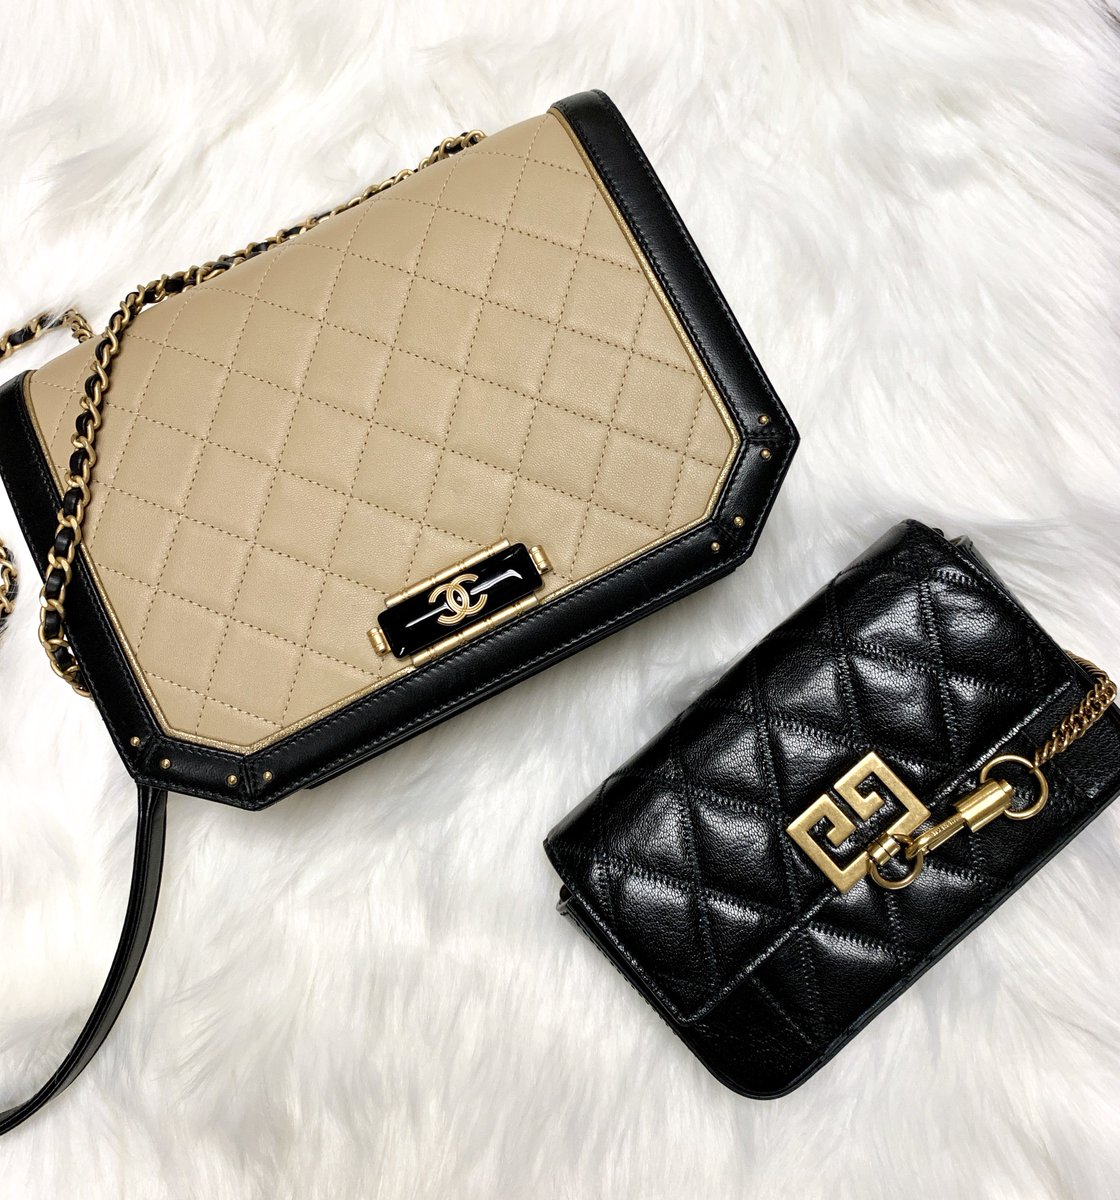 32650d1f7bc8 chanel bag hardware hashtag on Twitter